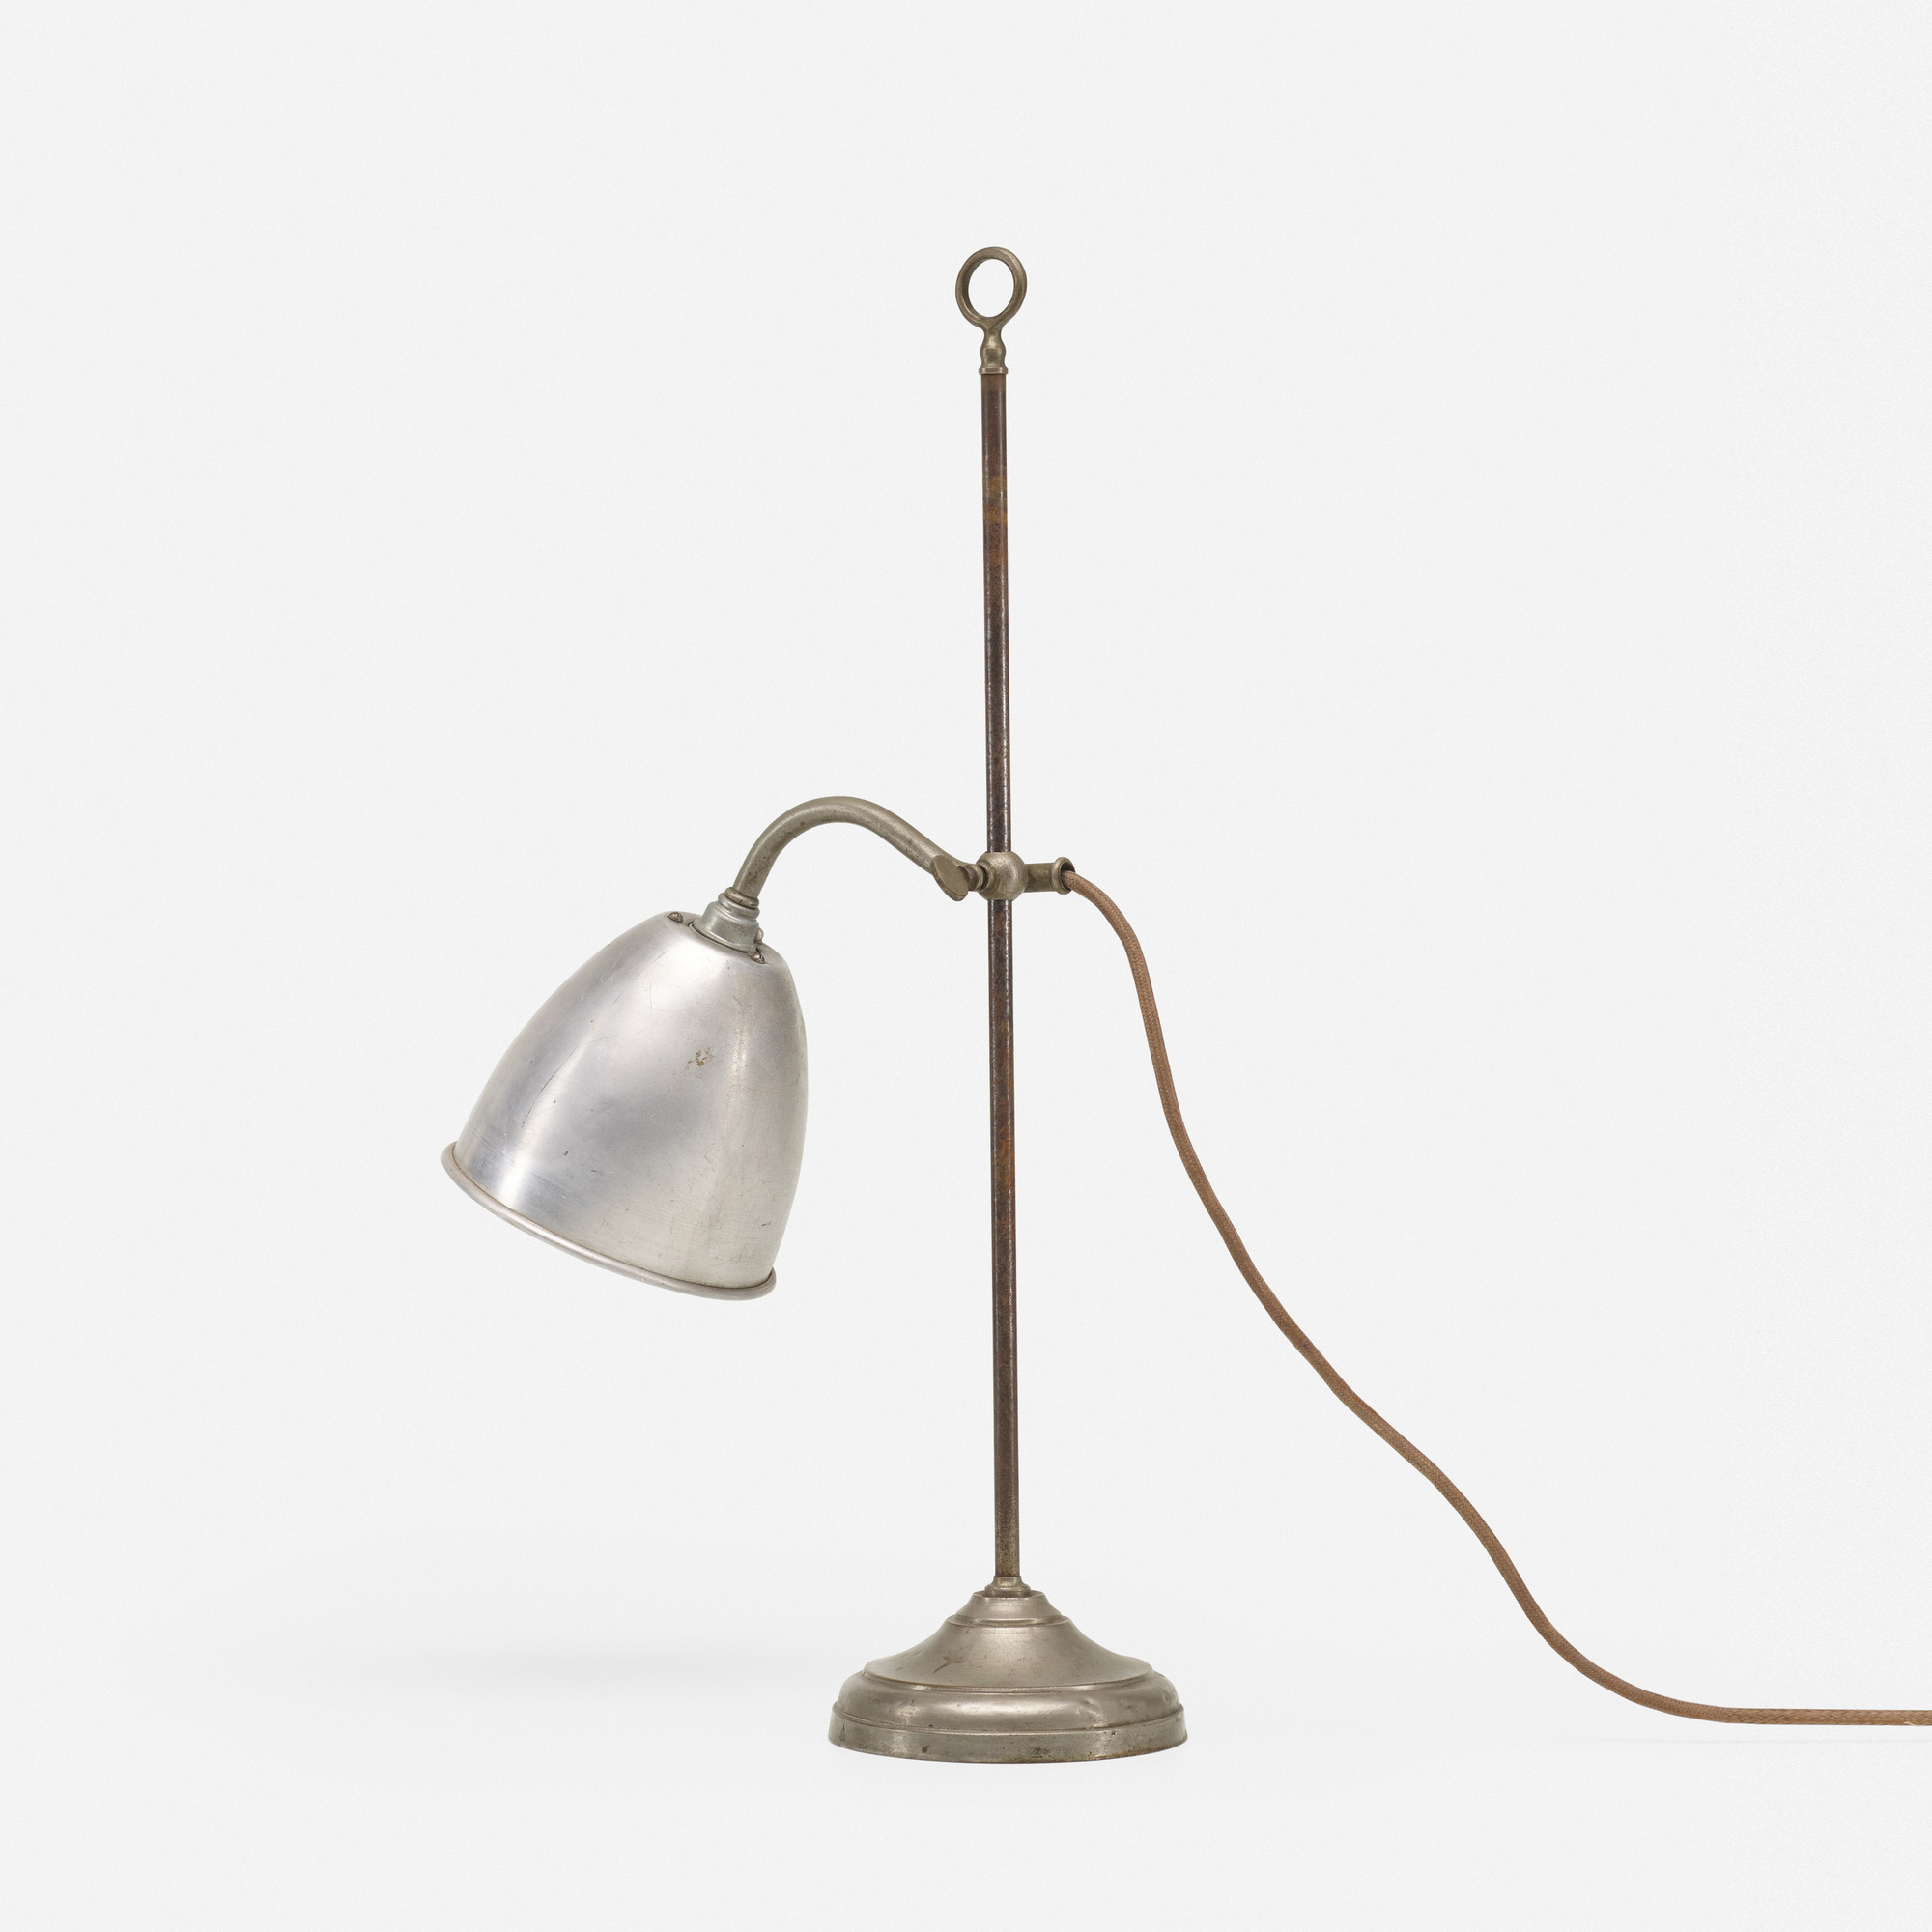 136: Early 20th Century / table lamp (2 of 3)